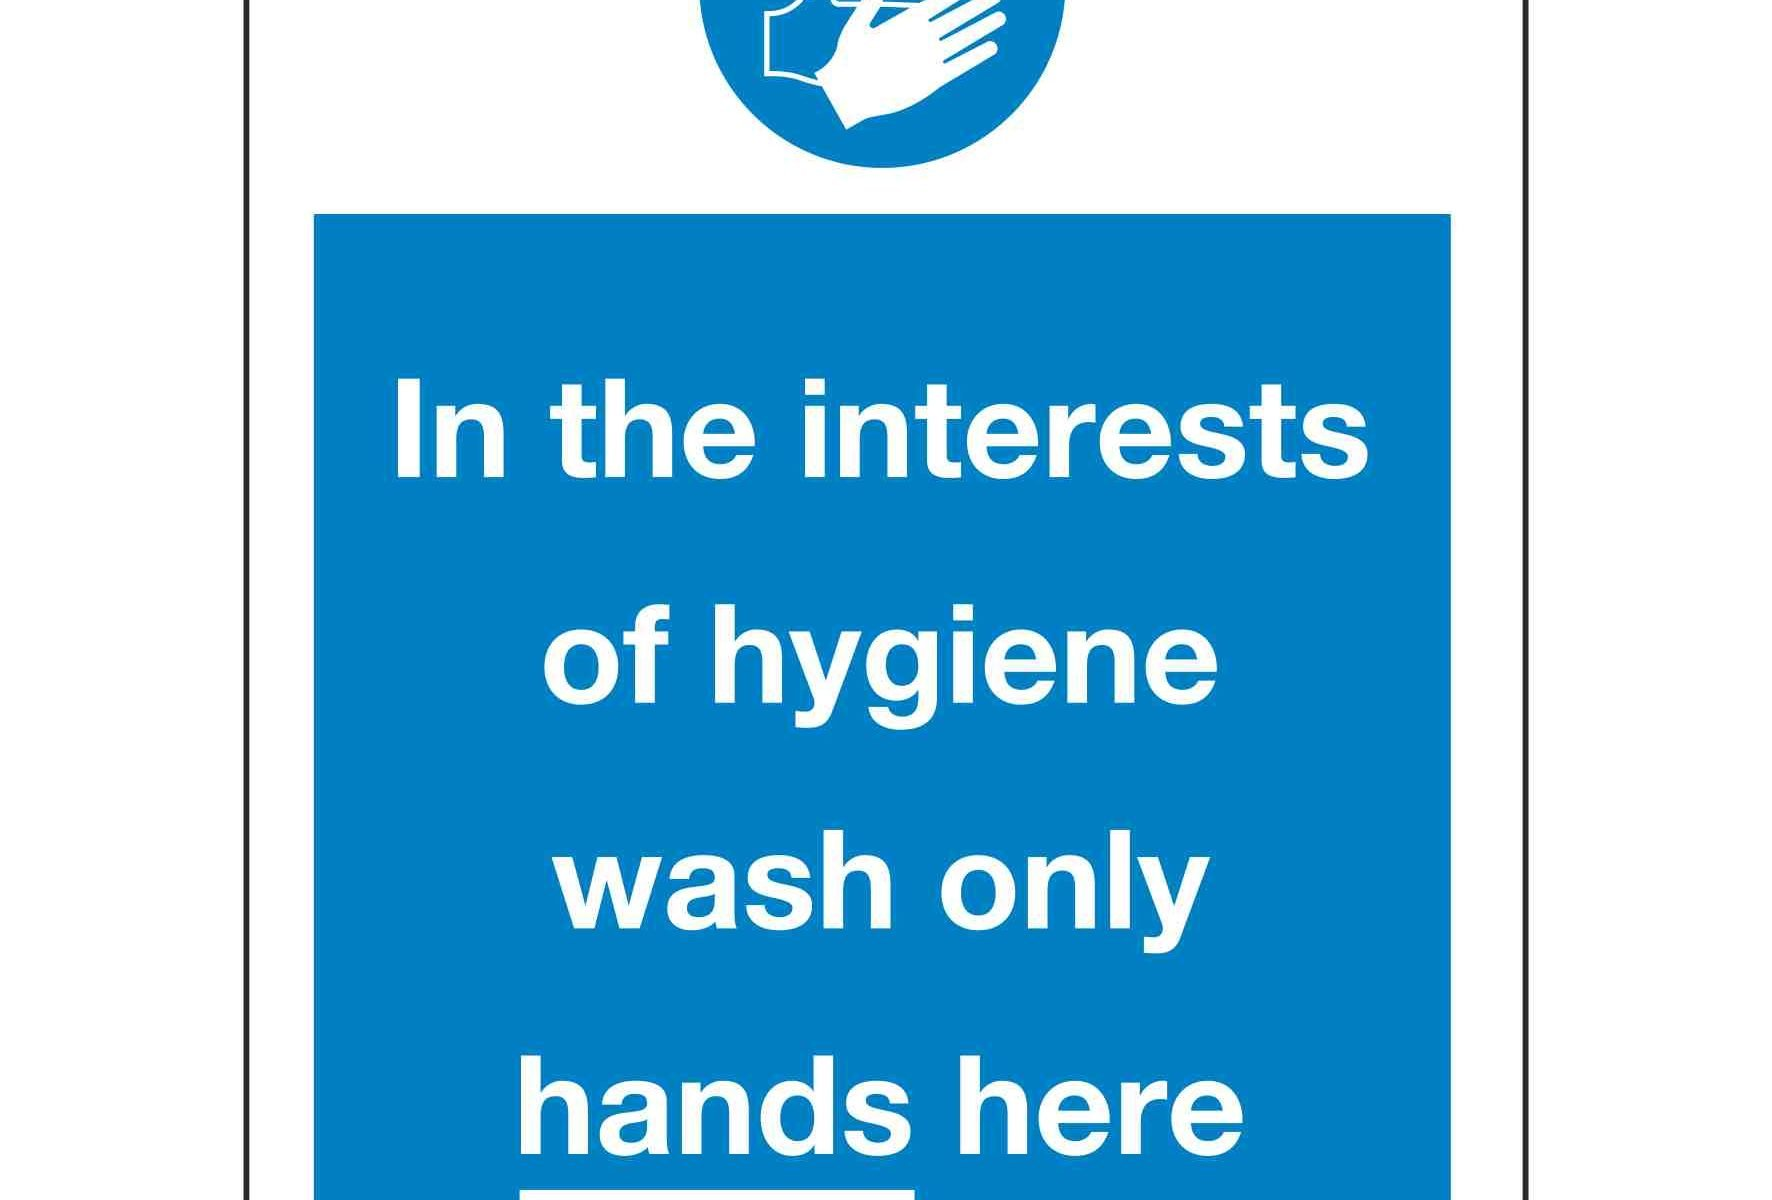 In the interests of hygiene wash only hands here